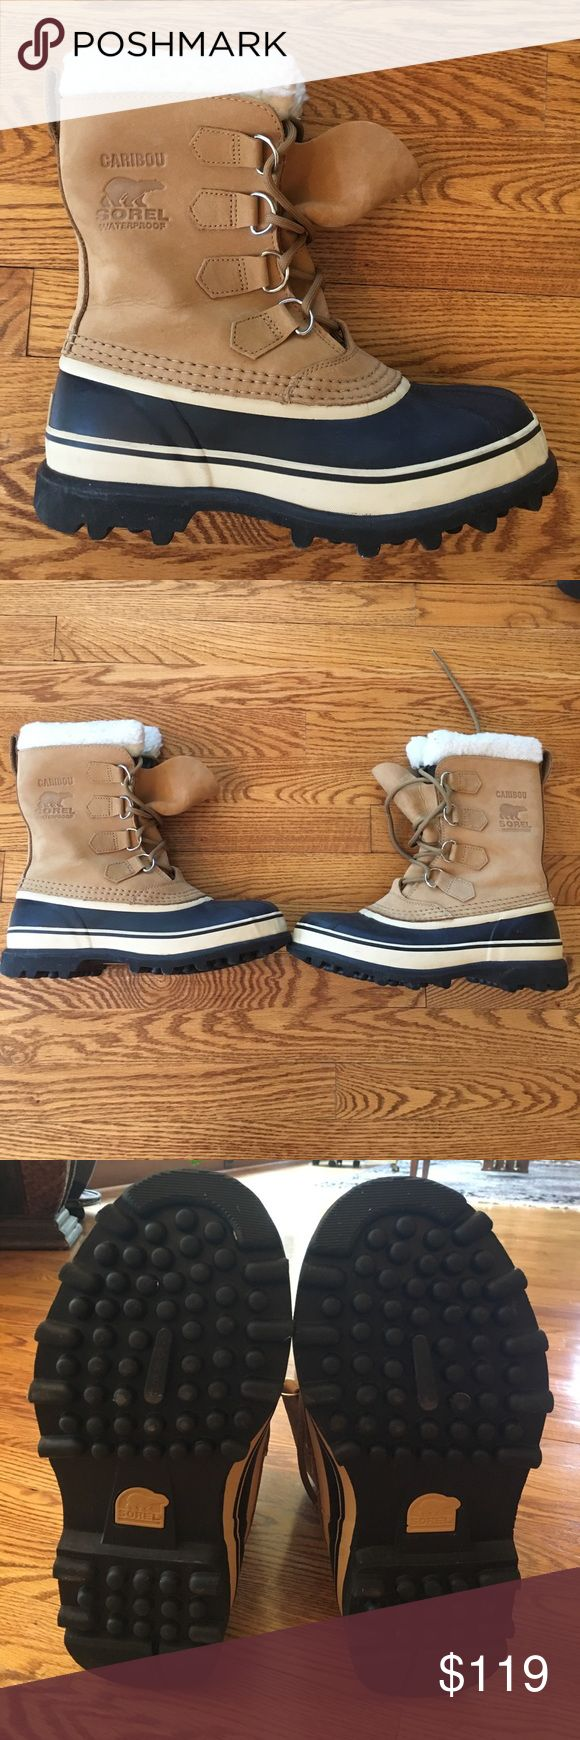 Sorel Women's Caribou Heavy Winter Boots Size 8.5 Extreme Cold Waterproof Caribou Sorel Boots. Felt inside, Leather/Rubber outside with a heavy tread. Only worn one time. No damage to the shoe. You're feet will never be cold wearing these! Sorel Shoes Winter & Rain Boots